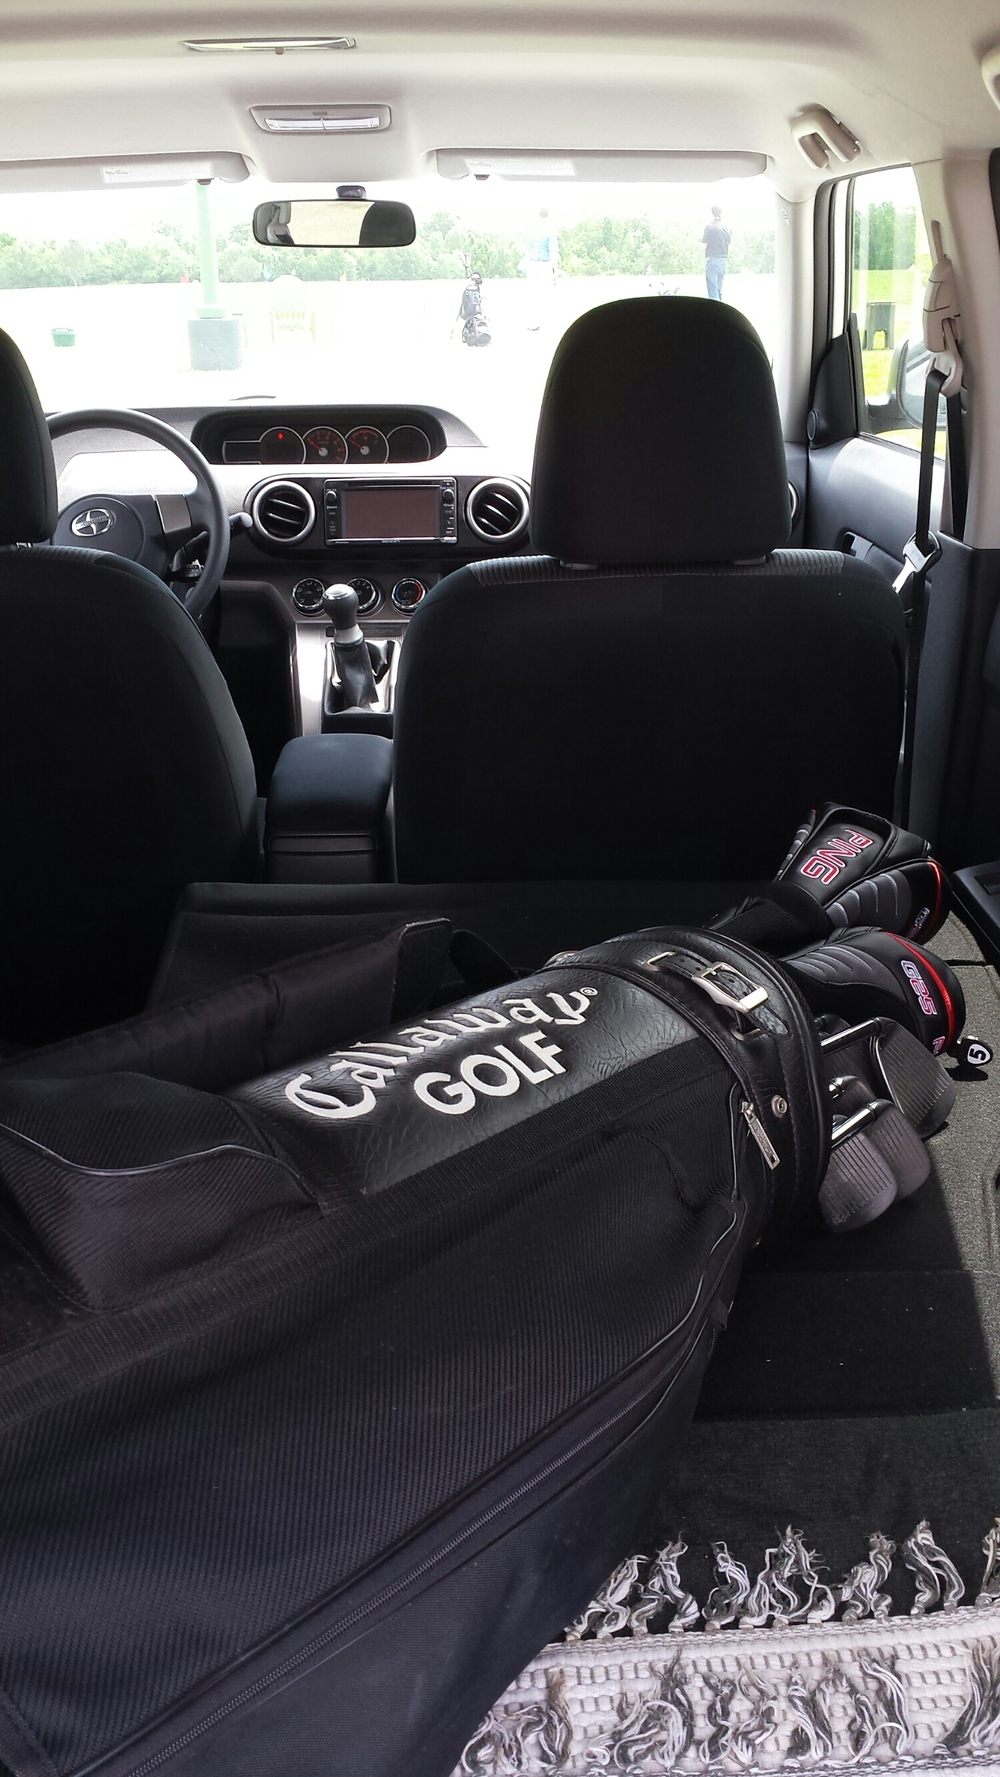 Calloway bag but different clubs